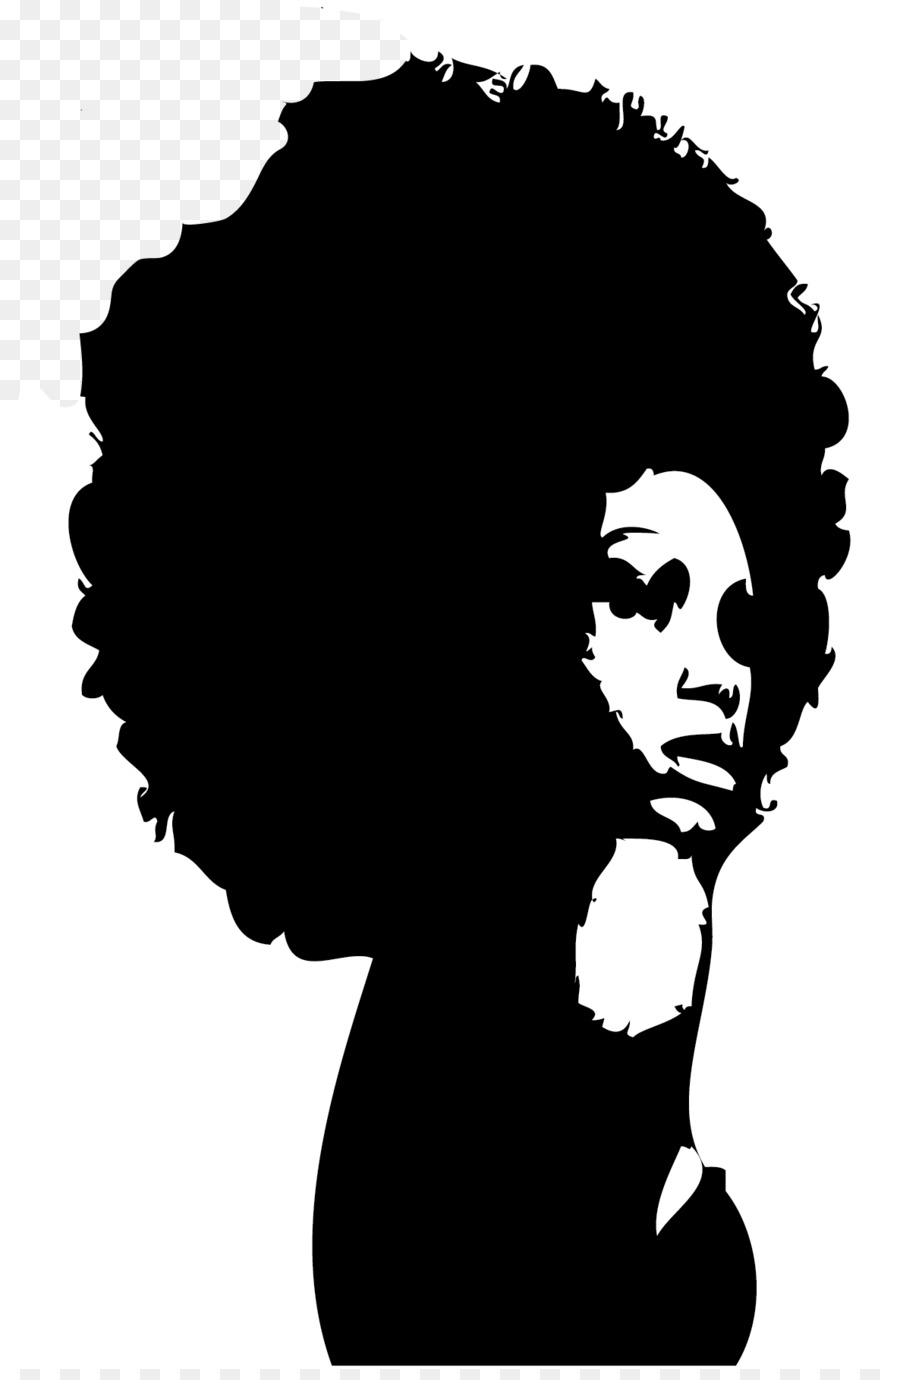 silhouette black african american female clip art afro lady rh kisspng com afro silhouette clip art afro clip art silhouettes